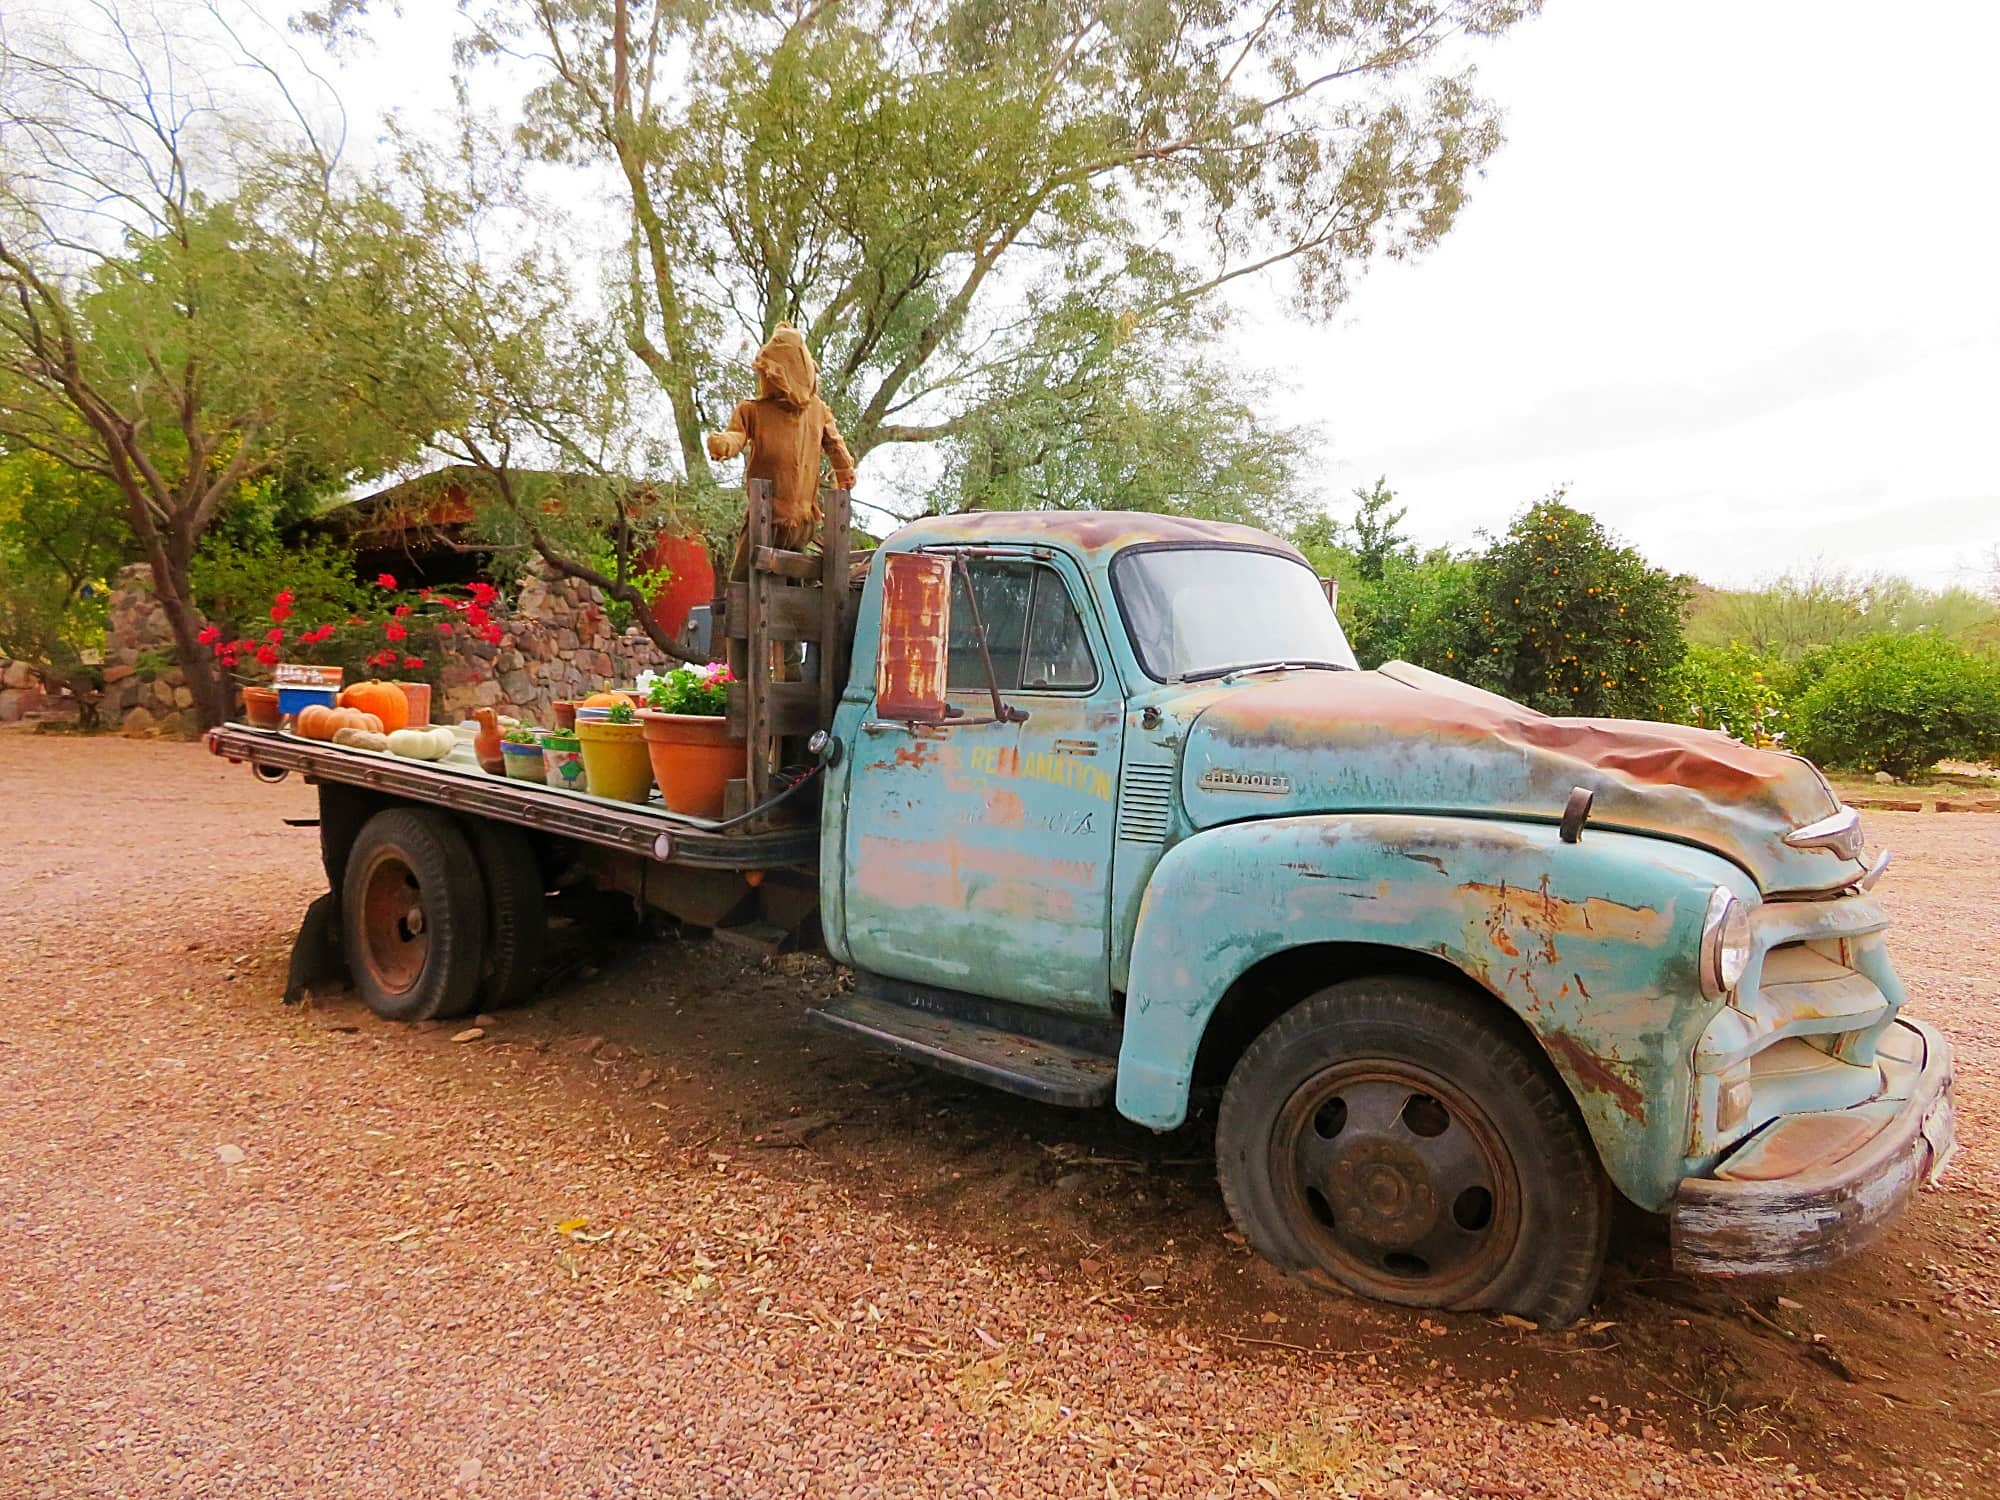 This old pickup has become a work of art at Aravaipa Farms Inn